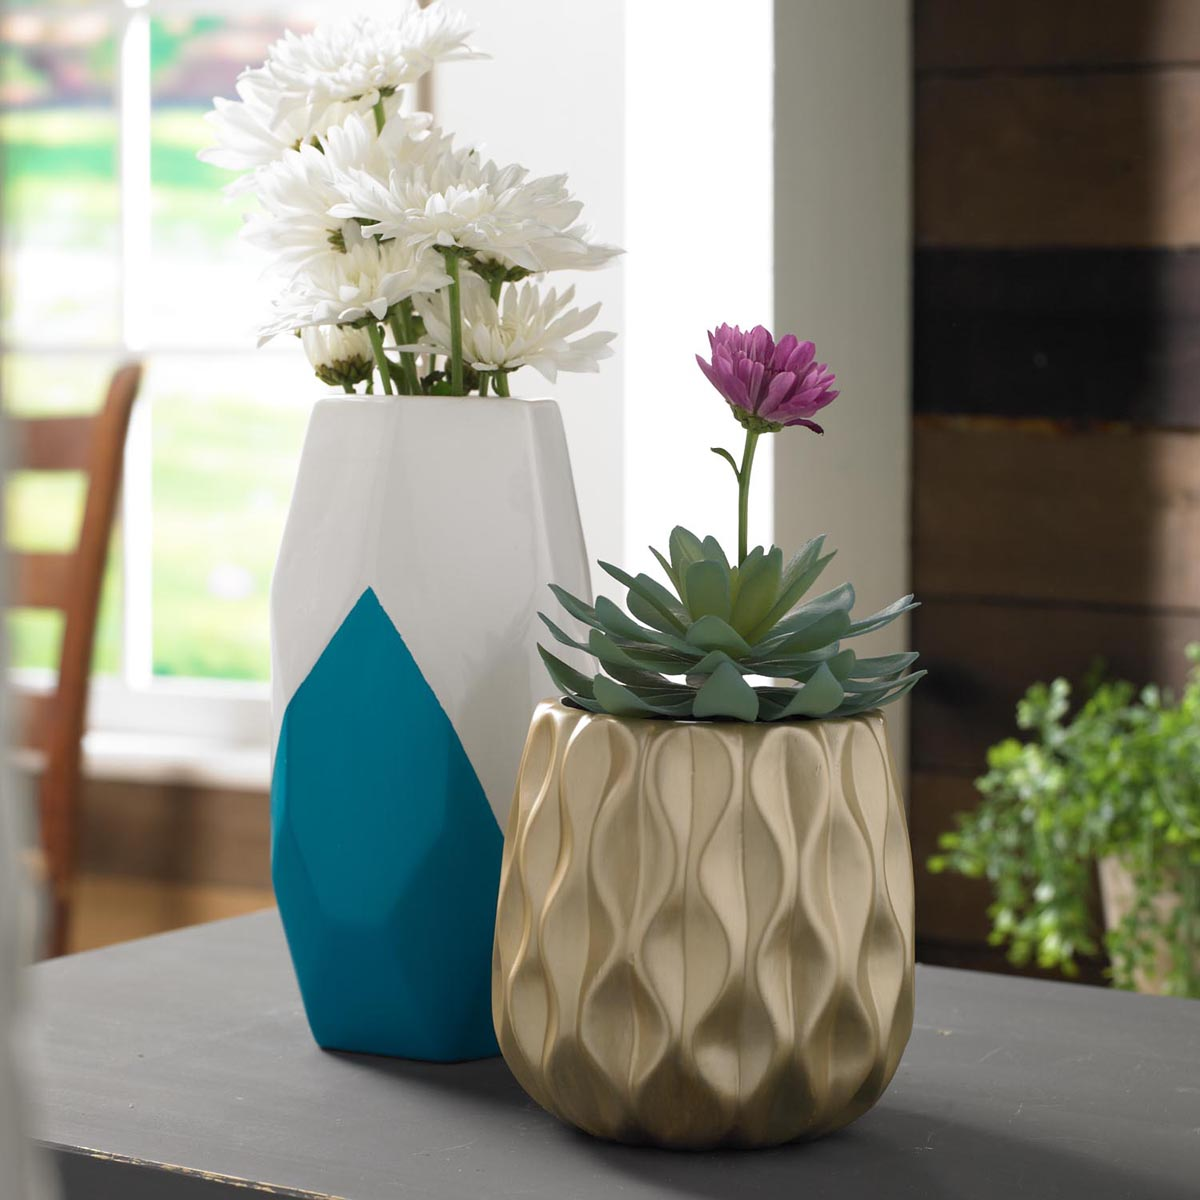 DIY Painted Vase Pairing